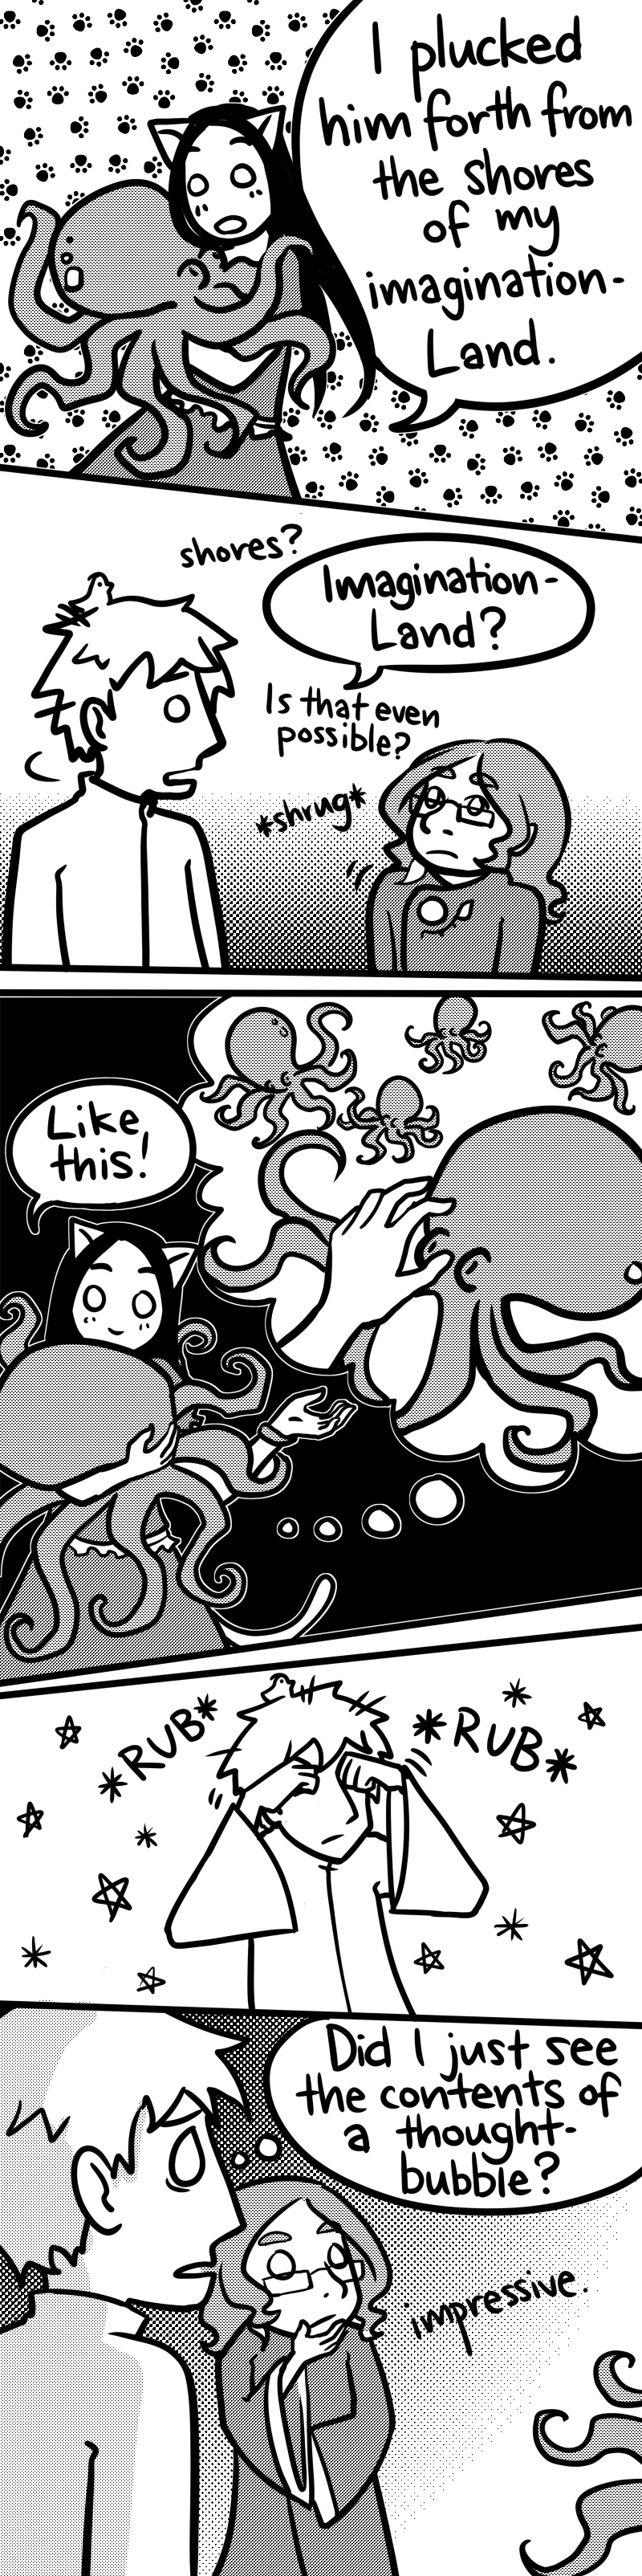 What fun in octopus mind-land